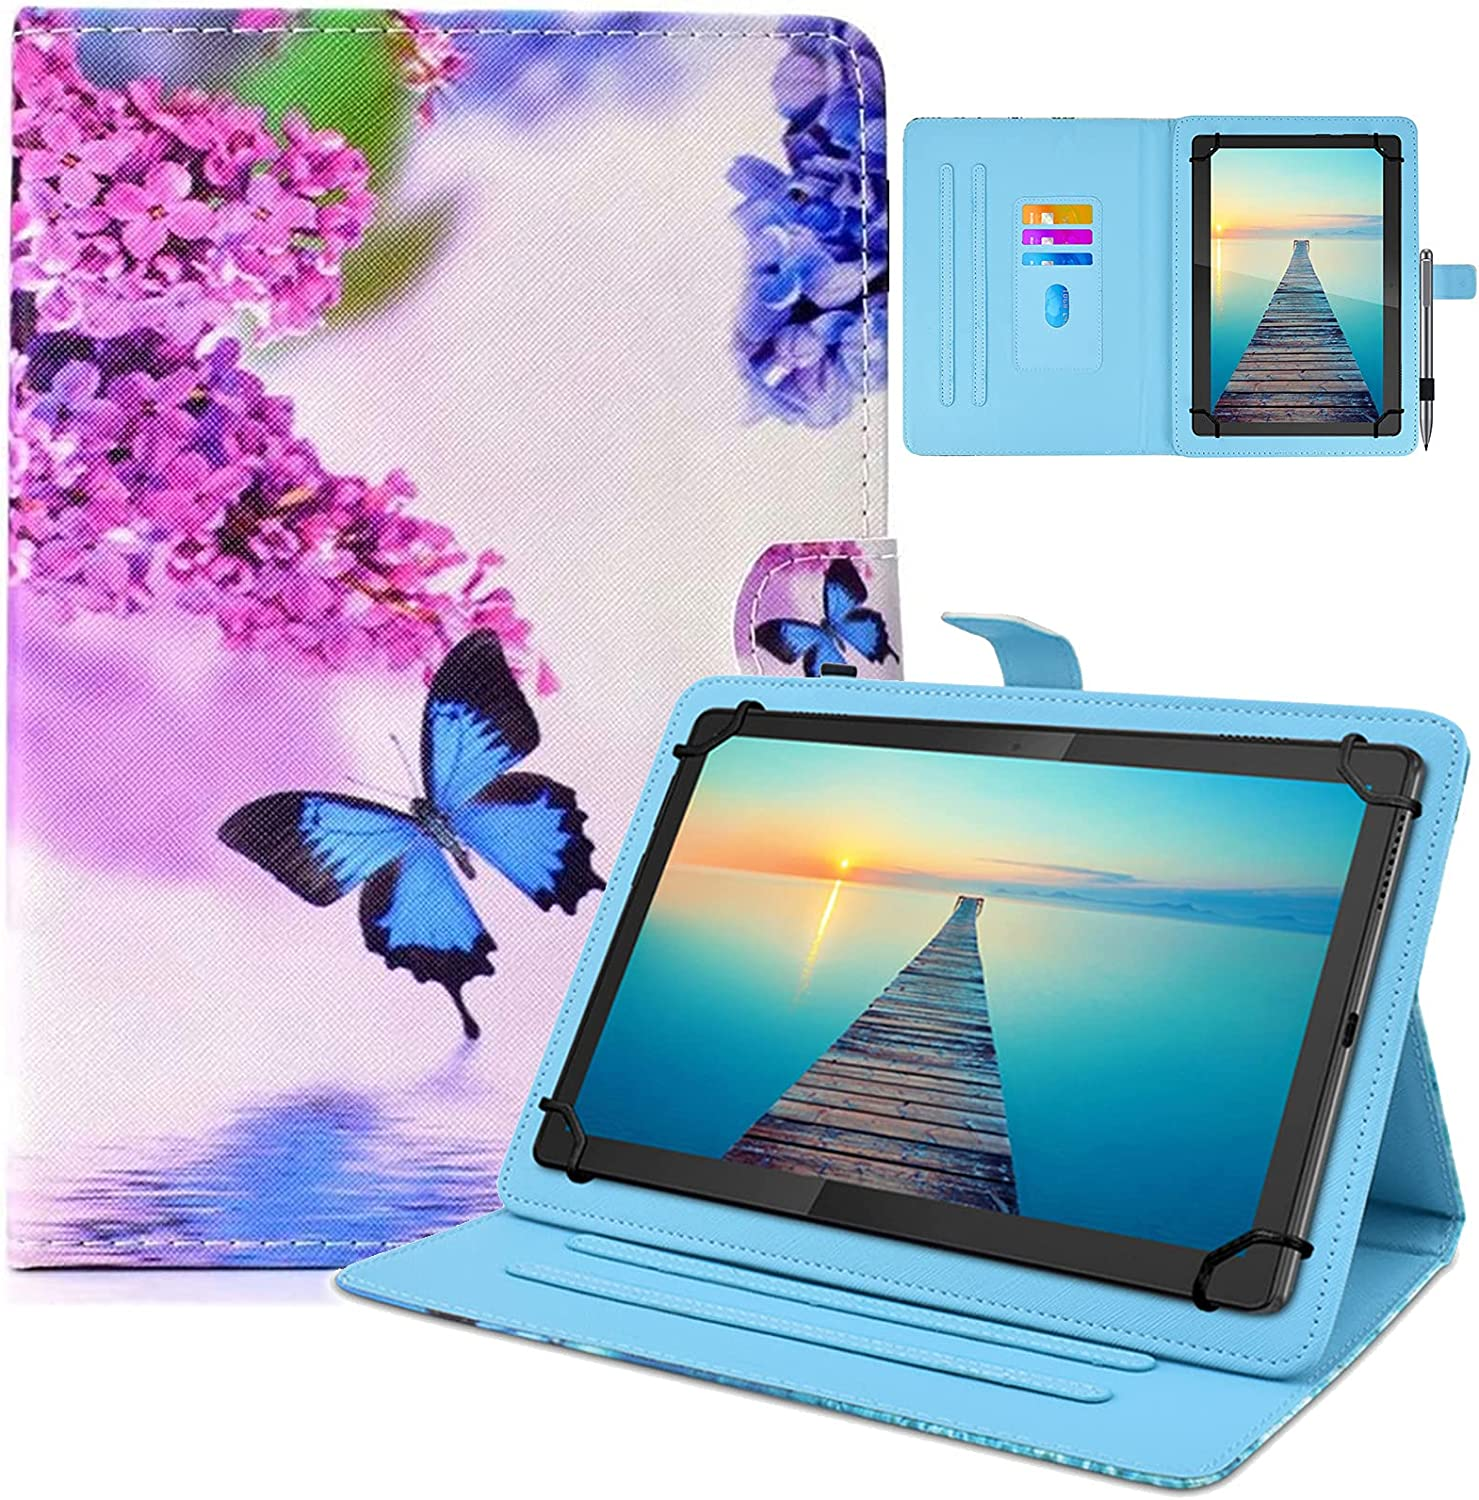 DETUOSI Universal 10 inch Tablet Case, 10.1 inch Tablet Cover, Protective Folio PU Leather Multi-angle Viewing Stand Case【with 3 Card Slots】for All Kinds of 9.6-10.5 inch Android/iOS/Windows Tablet #3